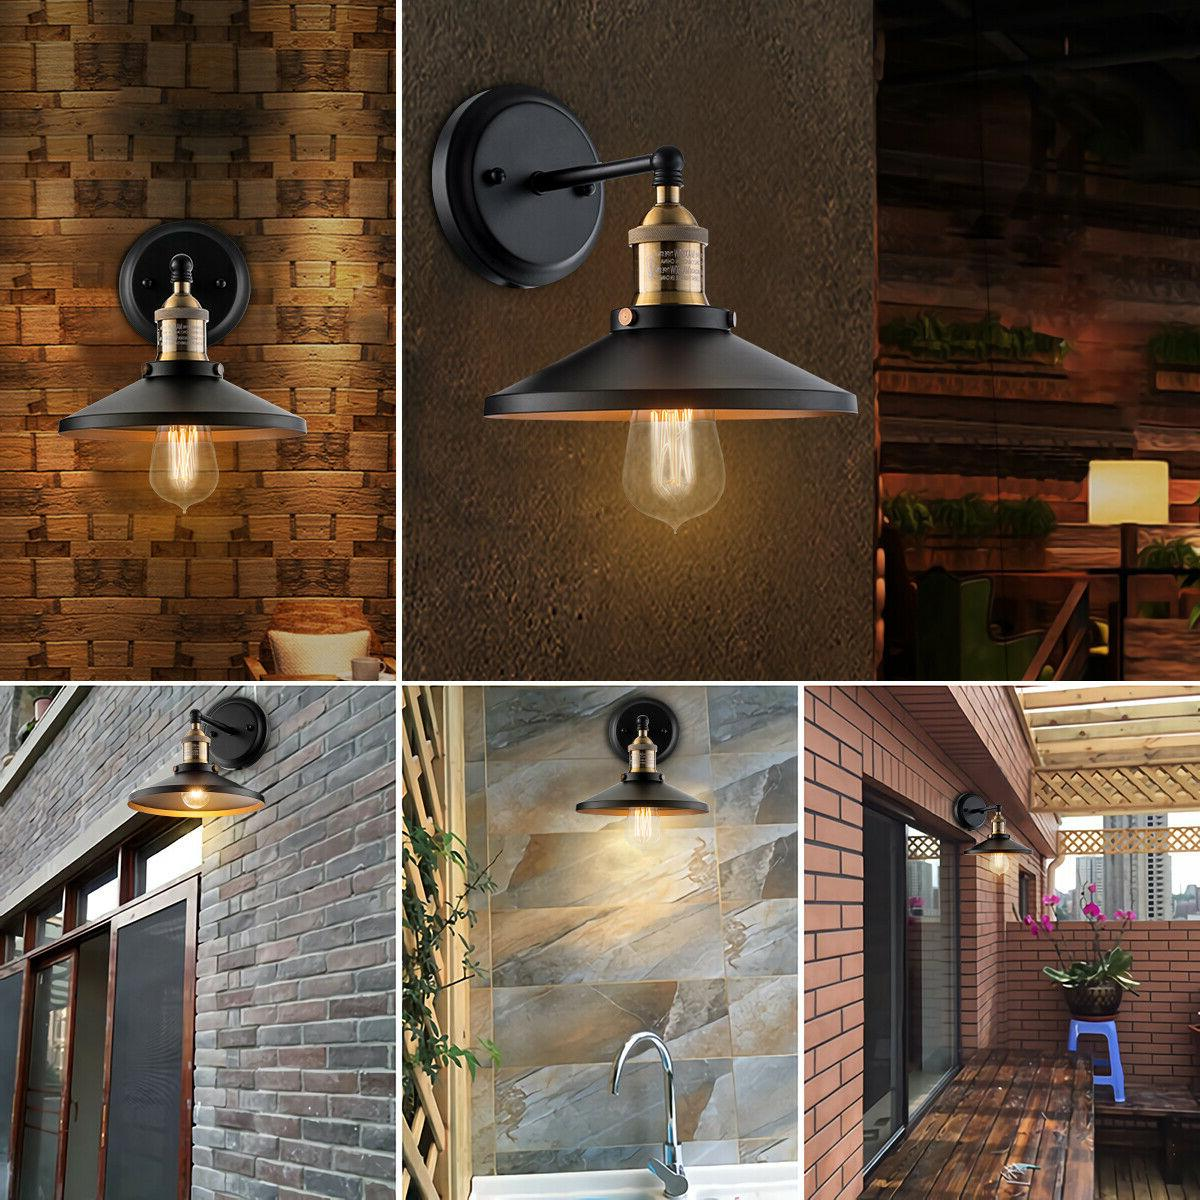 Black Wall Industrial Vintage Wall Lamp Porch